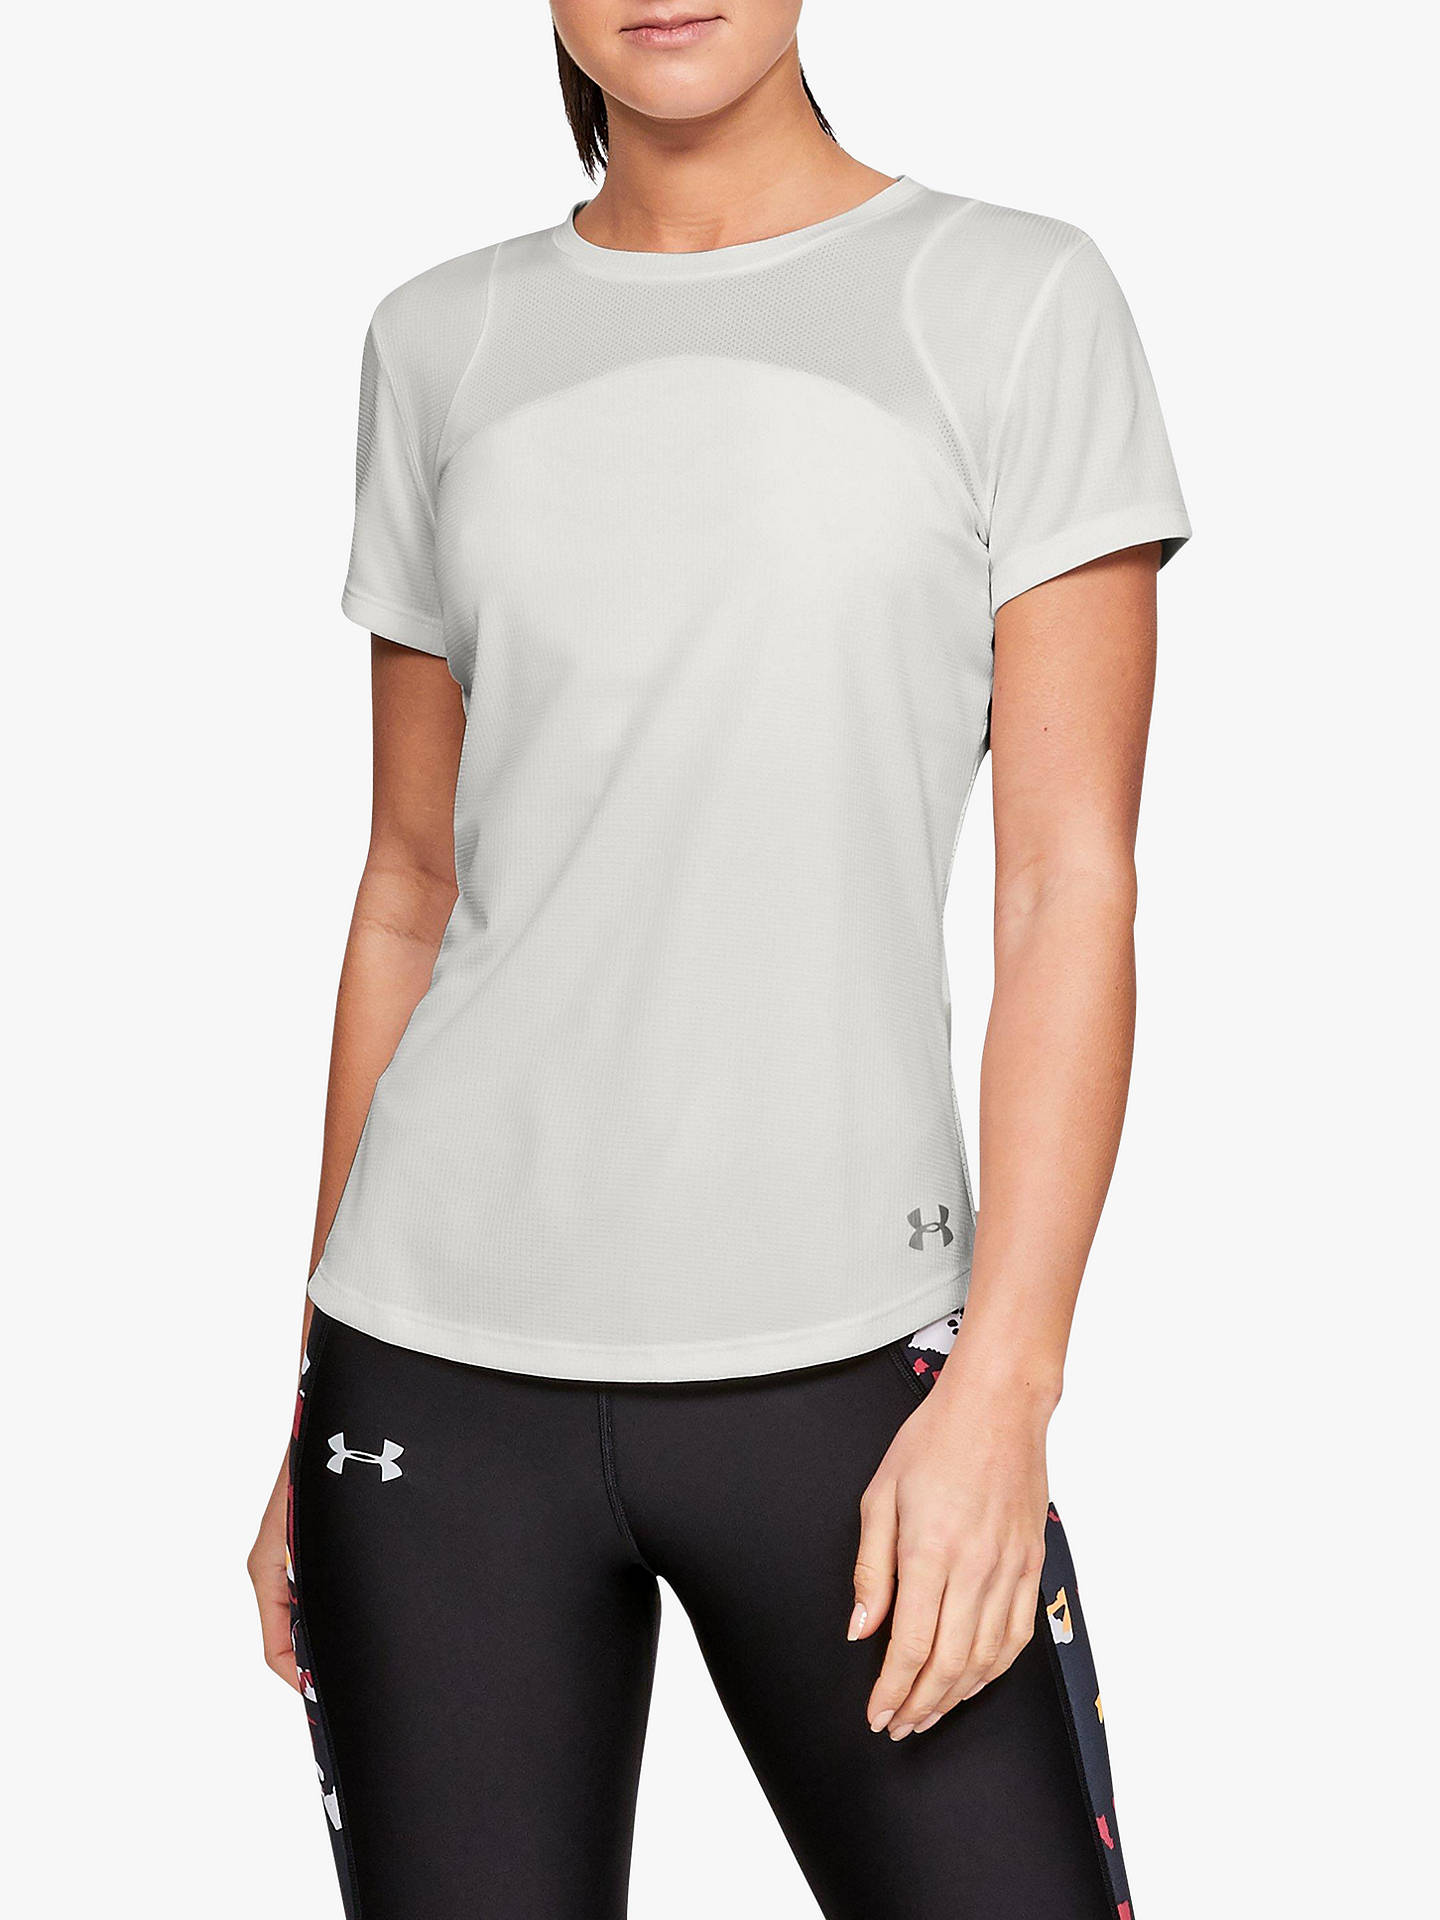 28677a90 Under Armour Speed Stride Mesh Short Sleeve Running Top, White